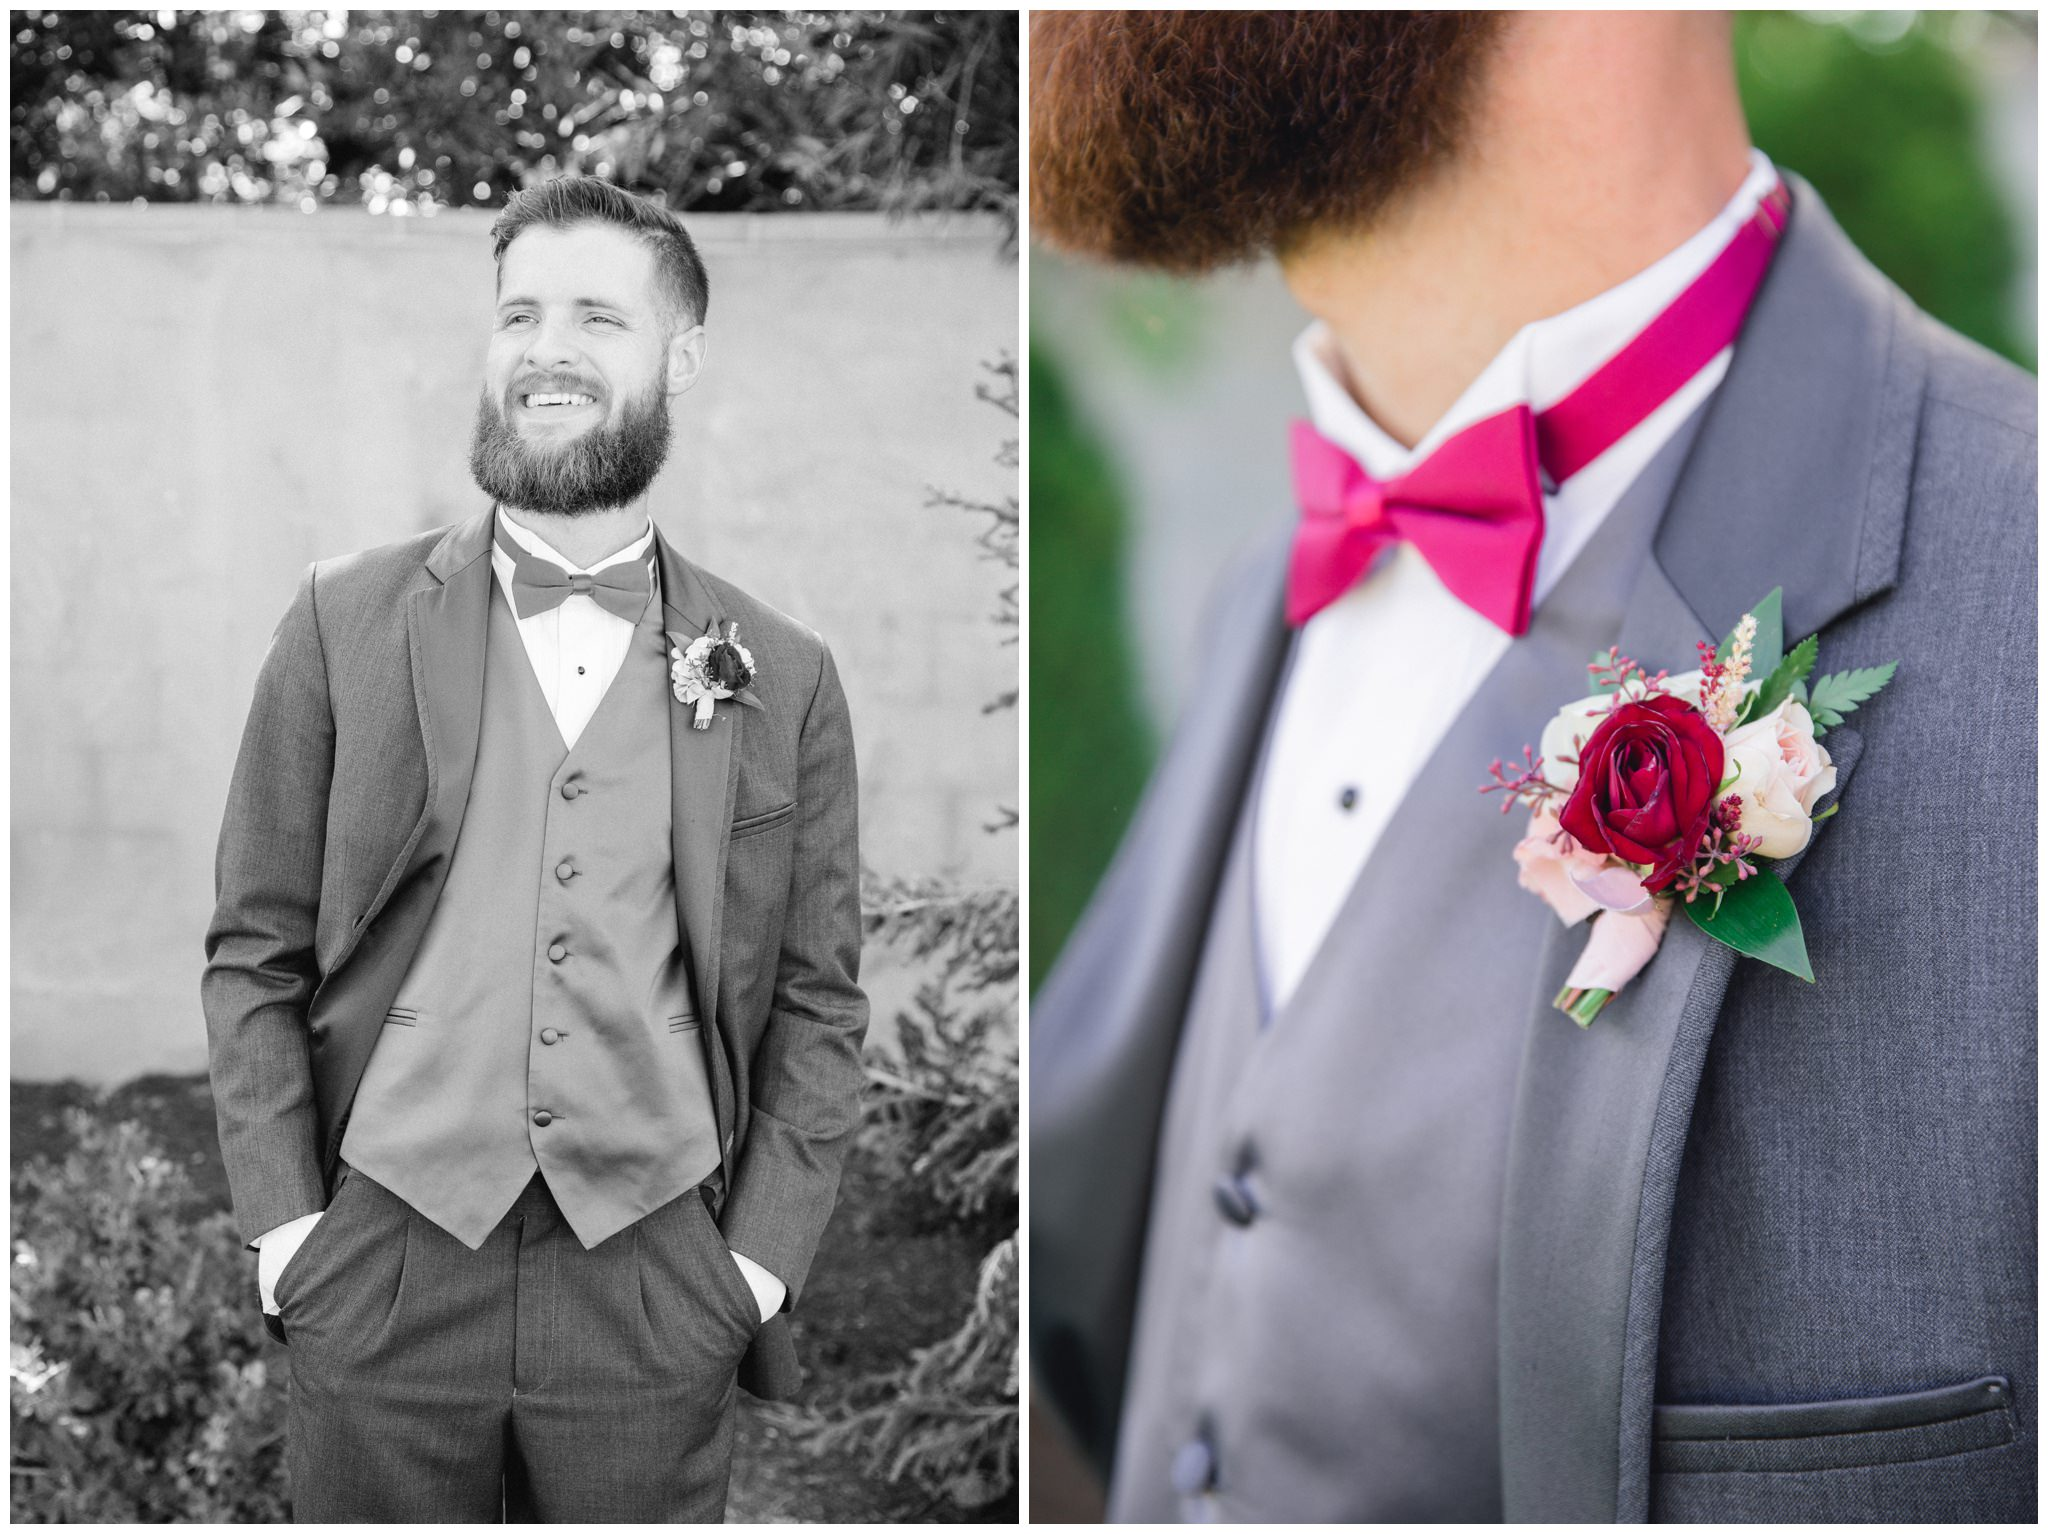 Groom pictures at detail images of his burgundy boutonniere by florist at the Wild Oak wedding Venue.